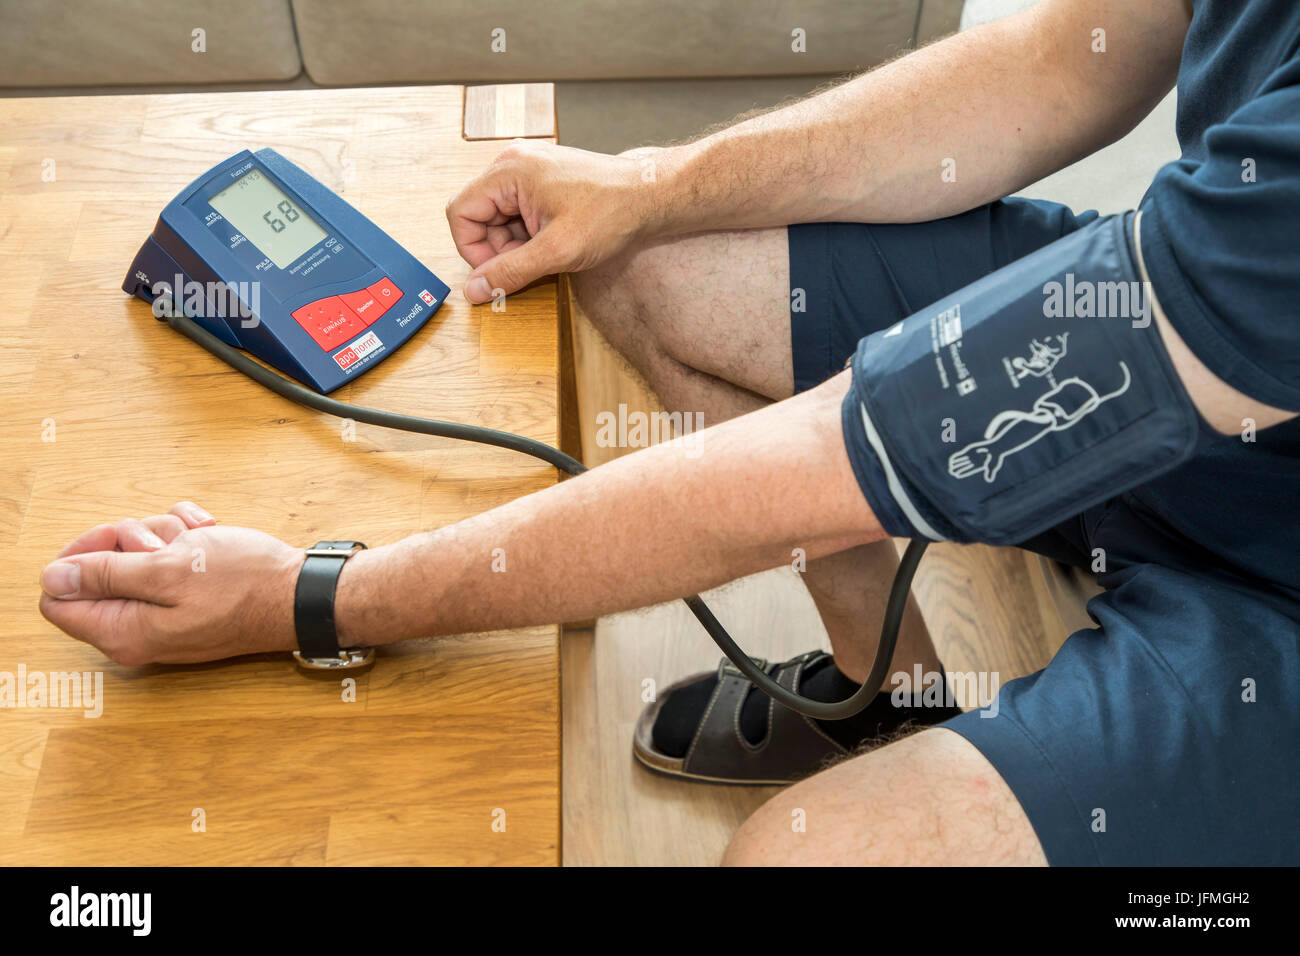 Blood pressure measurement, with an automatic upper arm blood pressure meter, Stock Photo